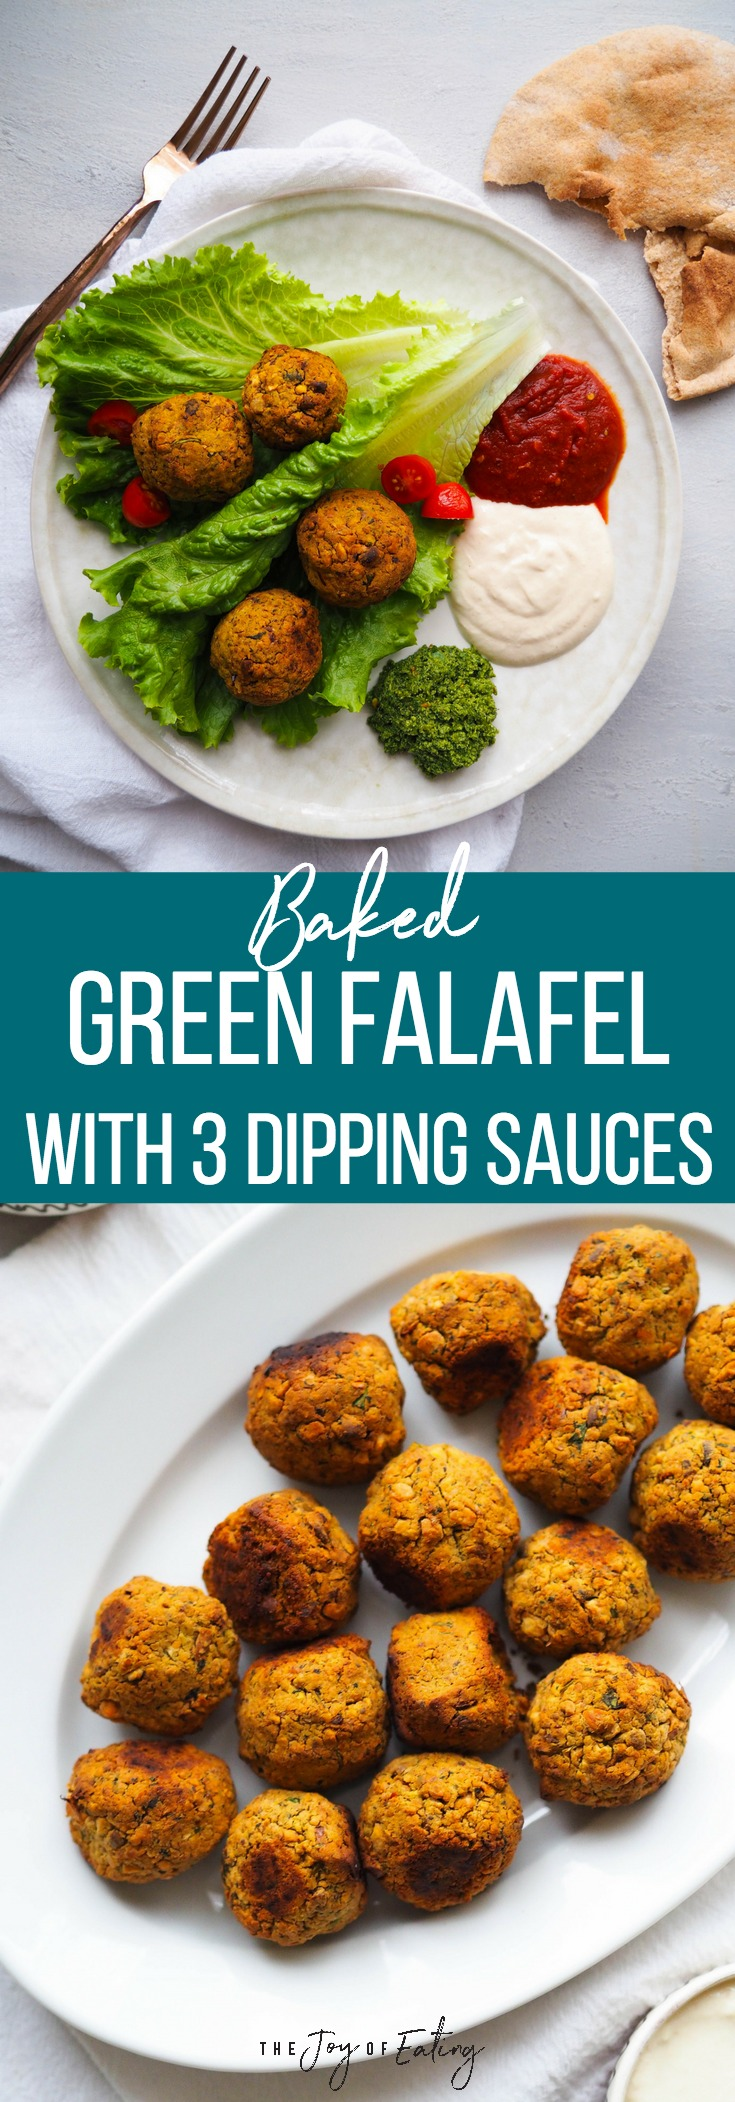 Make these easy baked green falafel, which come together in a food processor! They're studded with pistachios and tons of herbs! Serve with your choice of three dipping sauces - spicy harissa tomato sauce, tahini yogurt and green chutney! #vegan #vegetarian #healthy